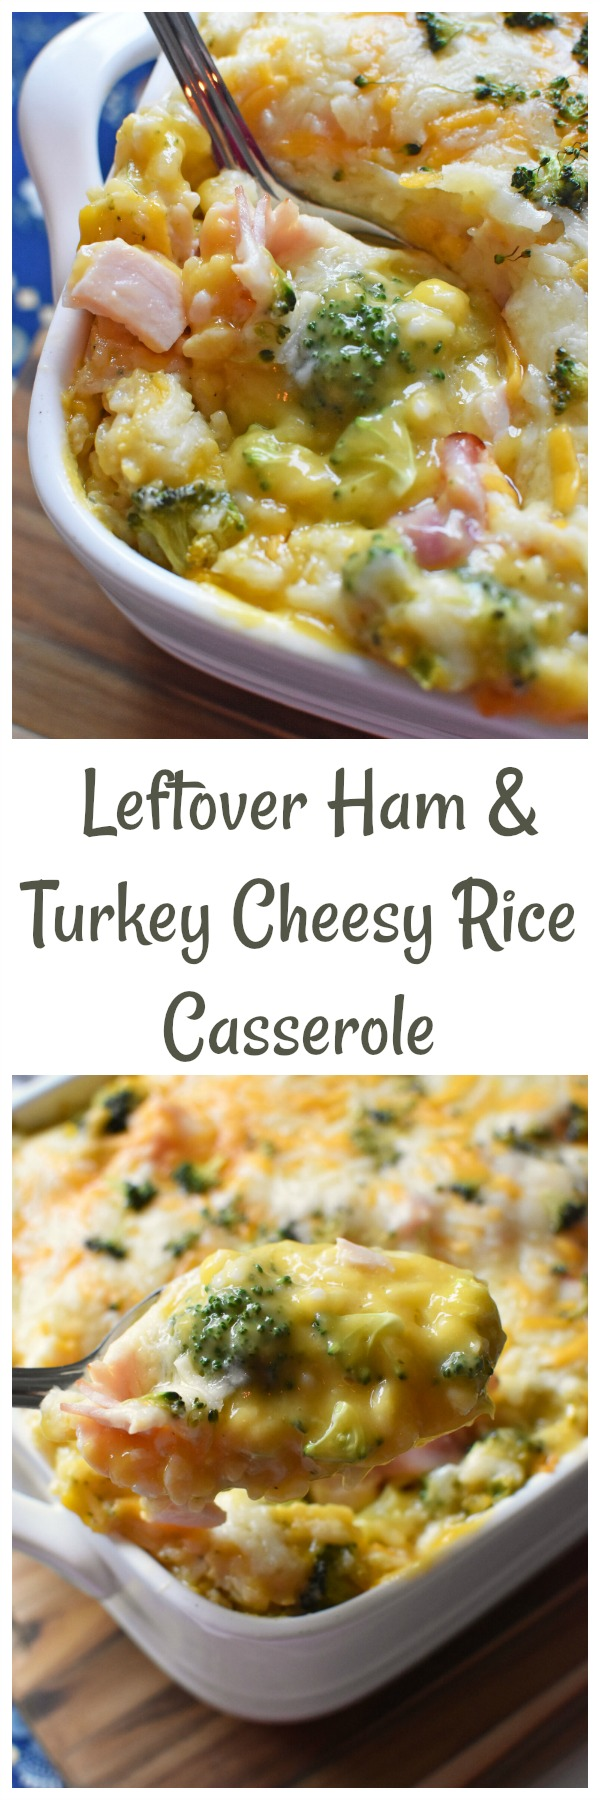 Leftover Ham & Turkey Cheesy Rice Casserole- A delicious recipe that is perfect for using leftover Thanksgiving or Holiday ham or turkey. Lots of cheese and plenty of flavor!